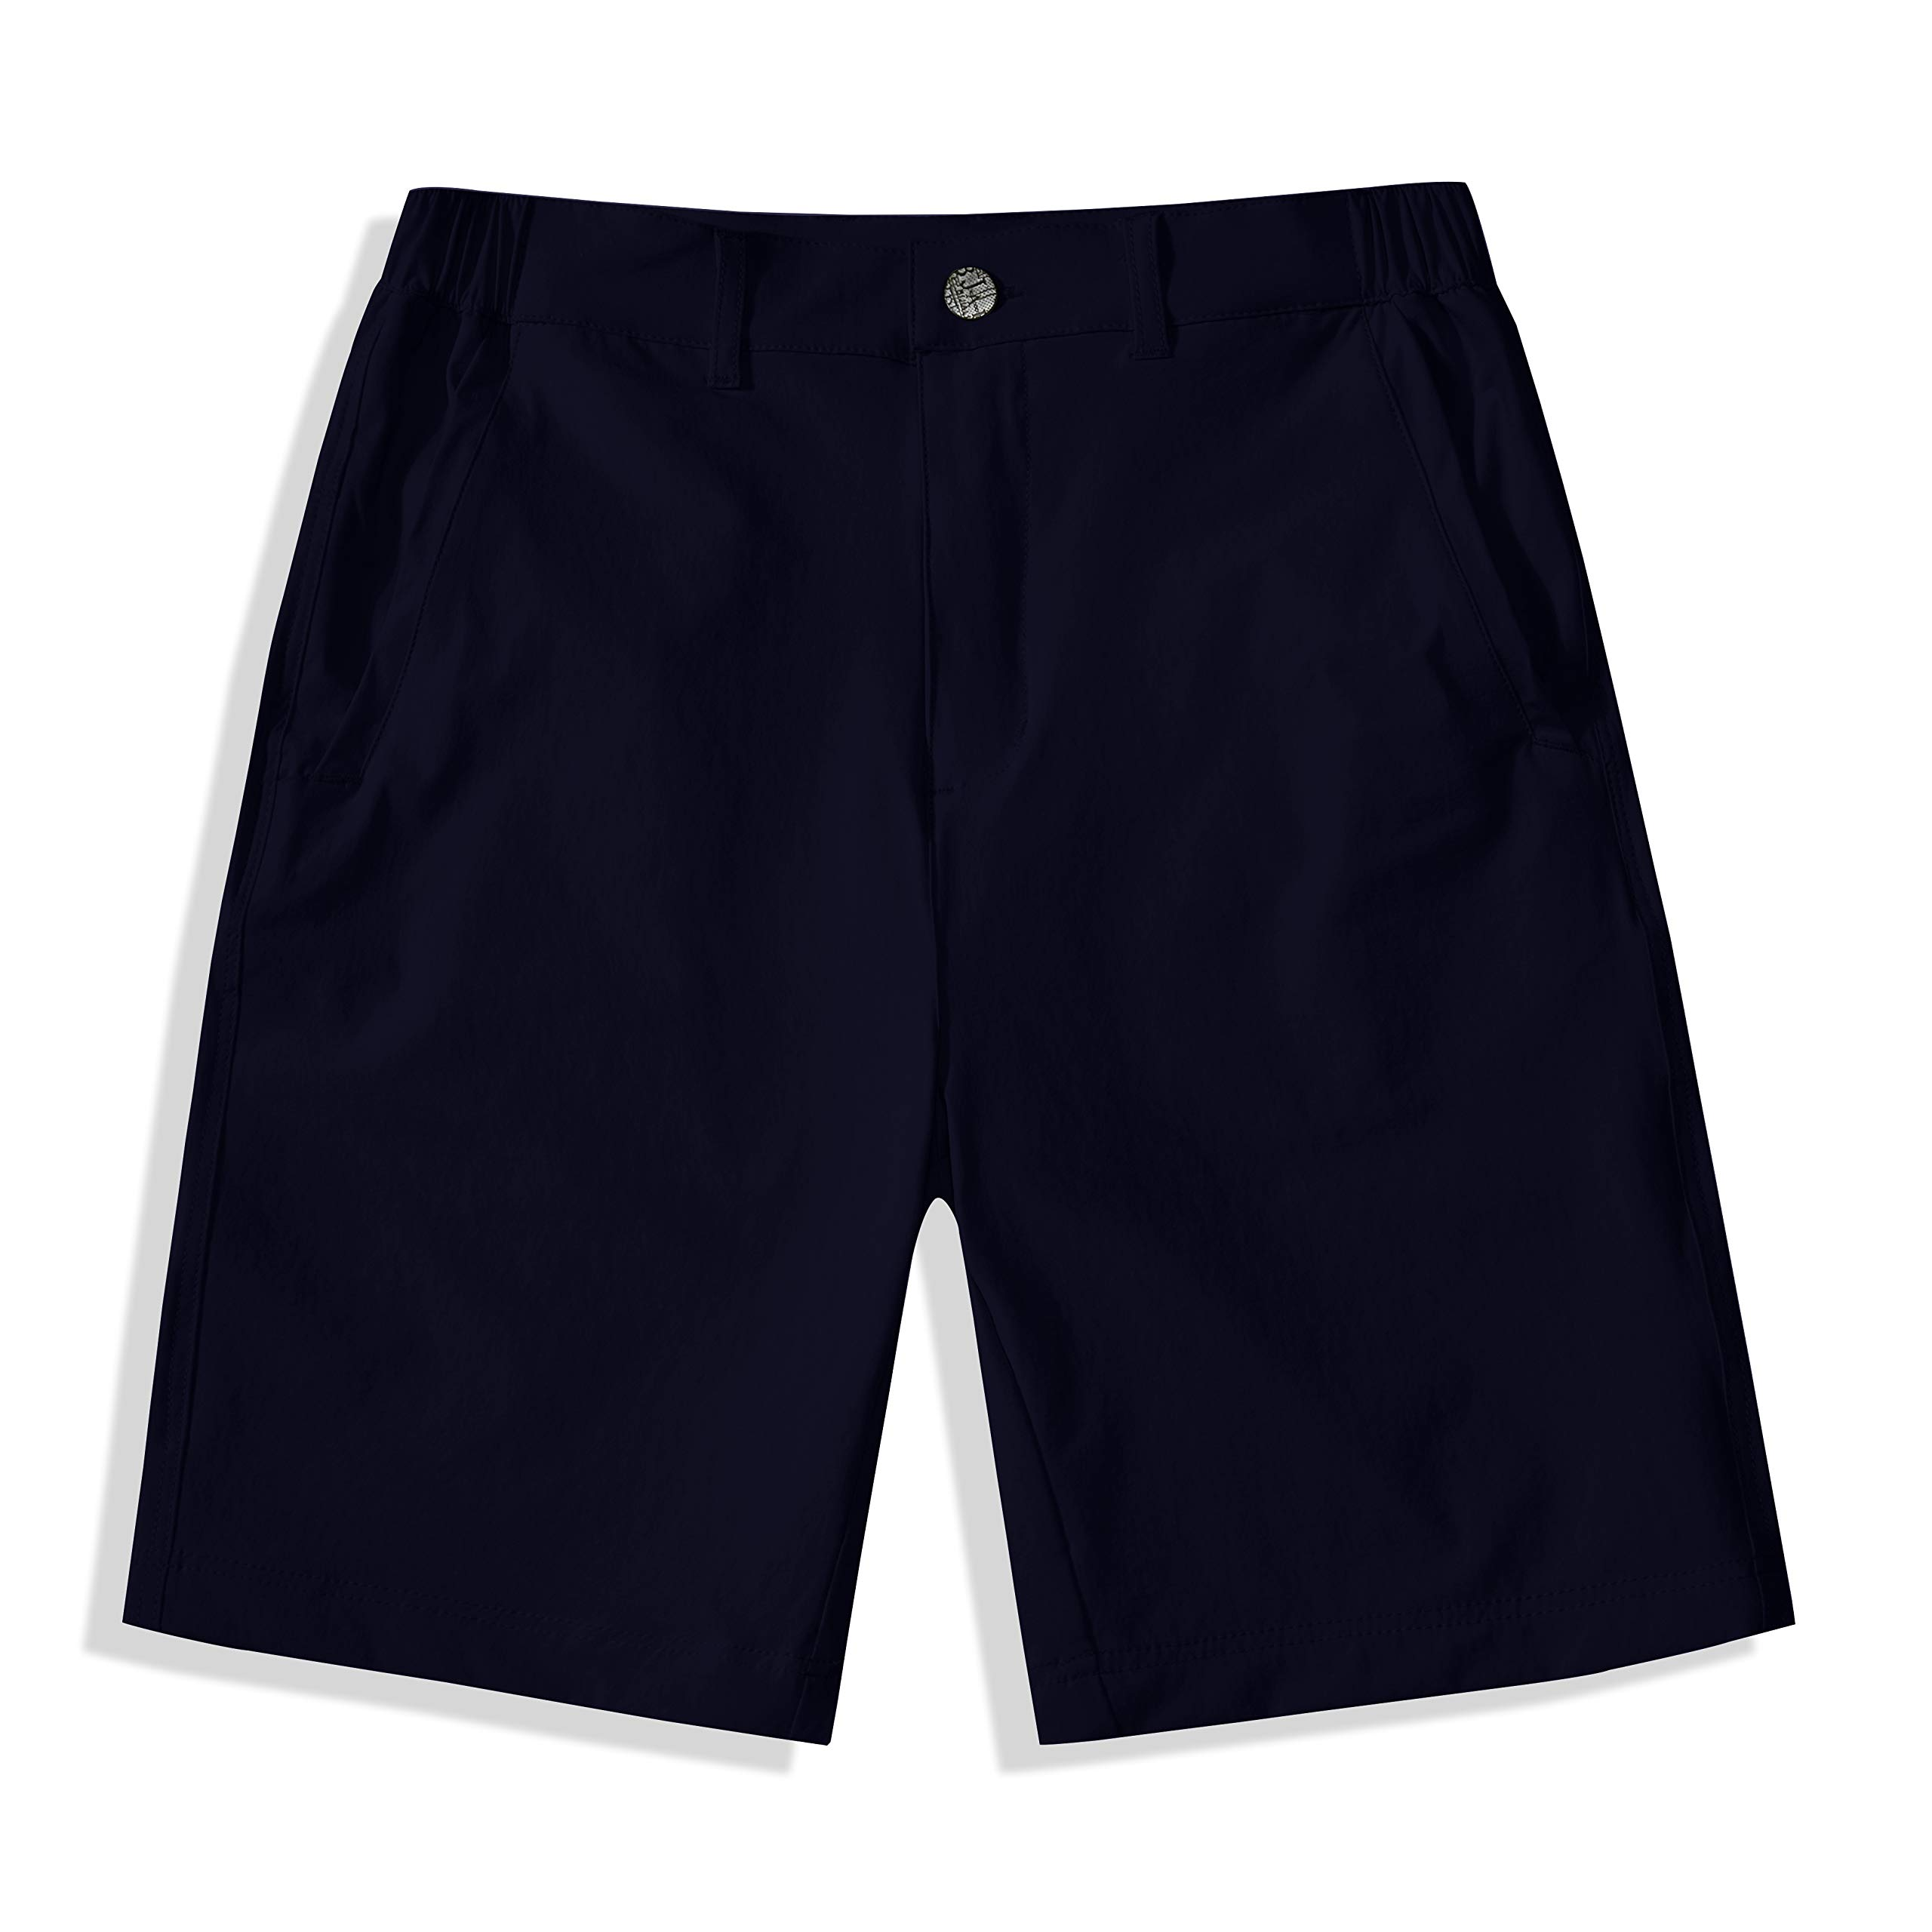 BASADINA Boys Shorts Quick Dry Outdoor Casual Shorts with Moisture Wicking Solid Navy by BASADINA